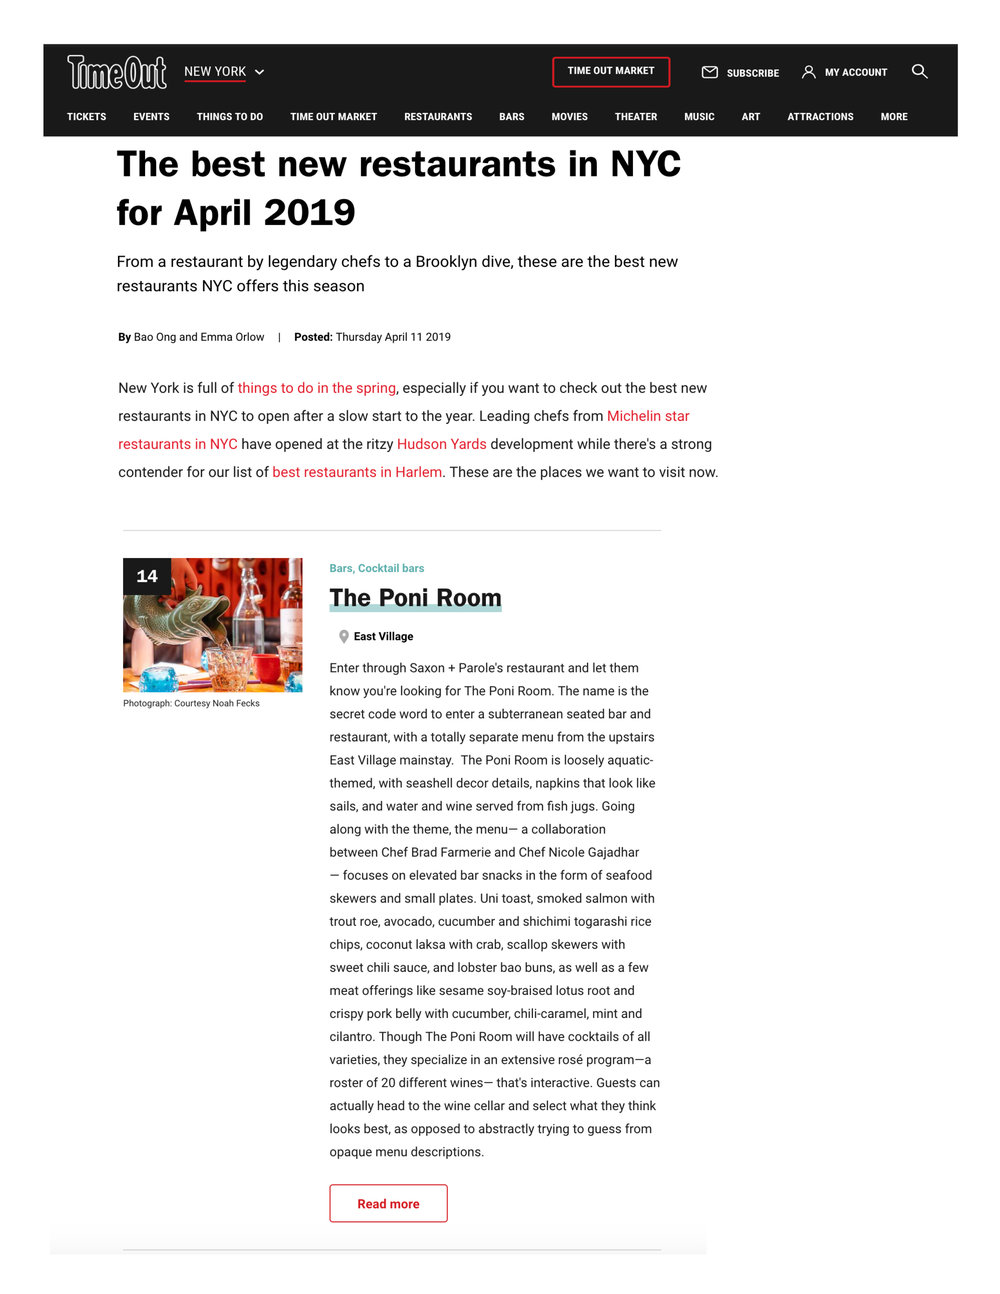 Time Out New York - Best New Restaurants in NYC 2019